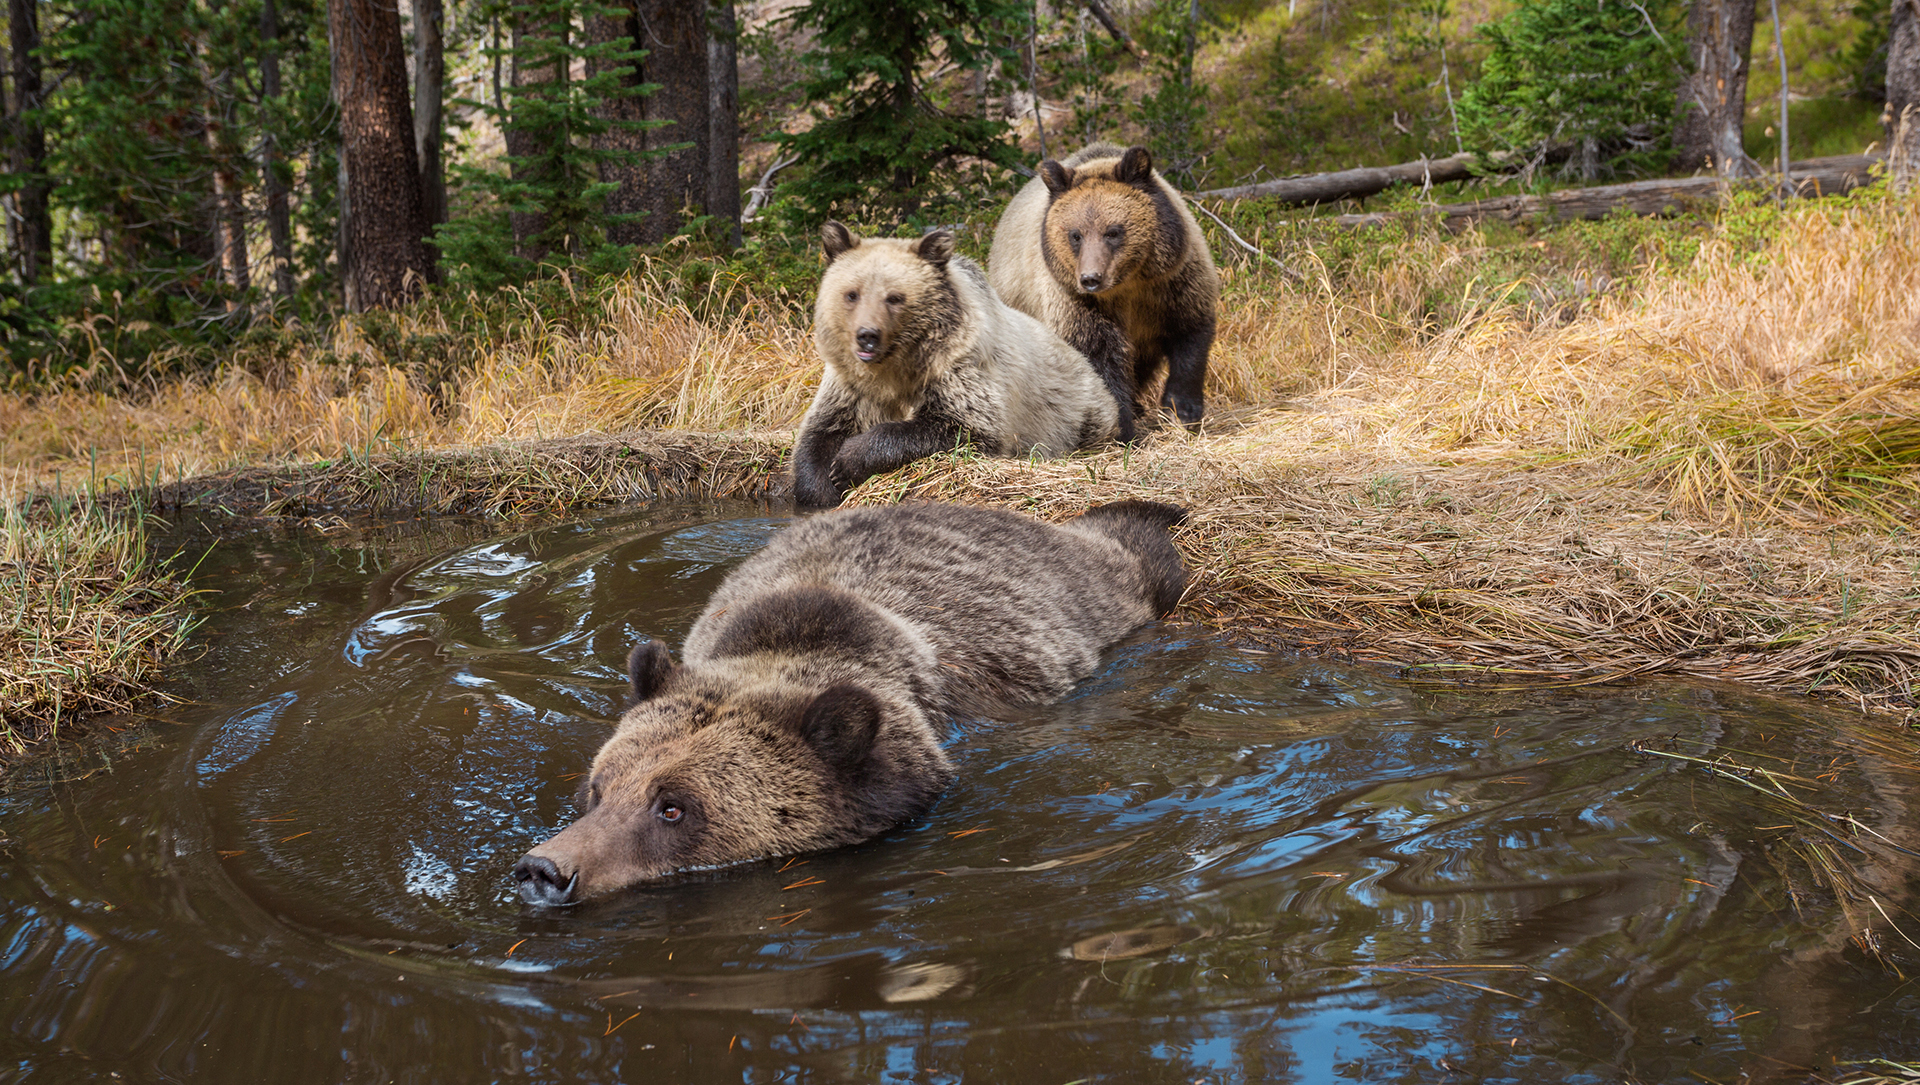 Exclusive Bear Bathtub Caught On Camera In Yellowstone